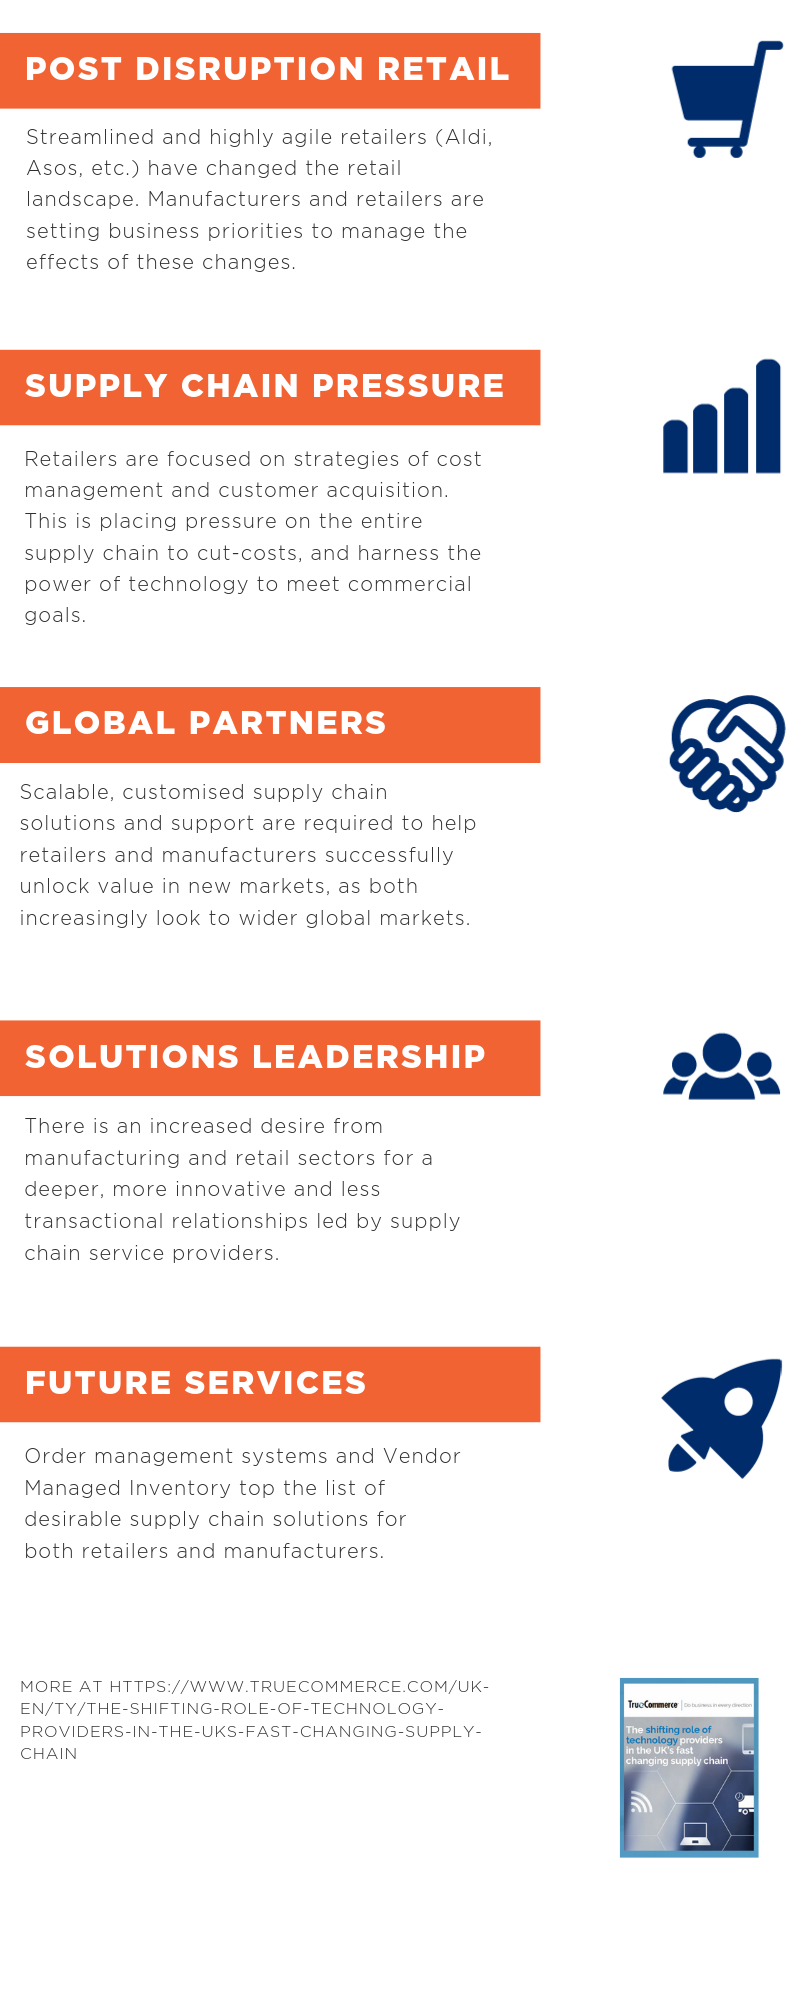 Infographic of TrueCommerce tech provider supply chain report